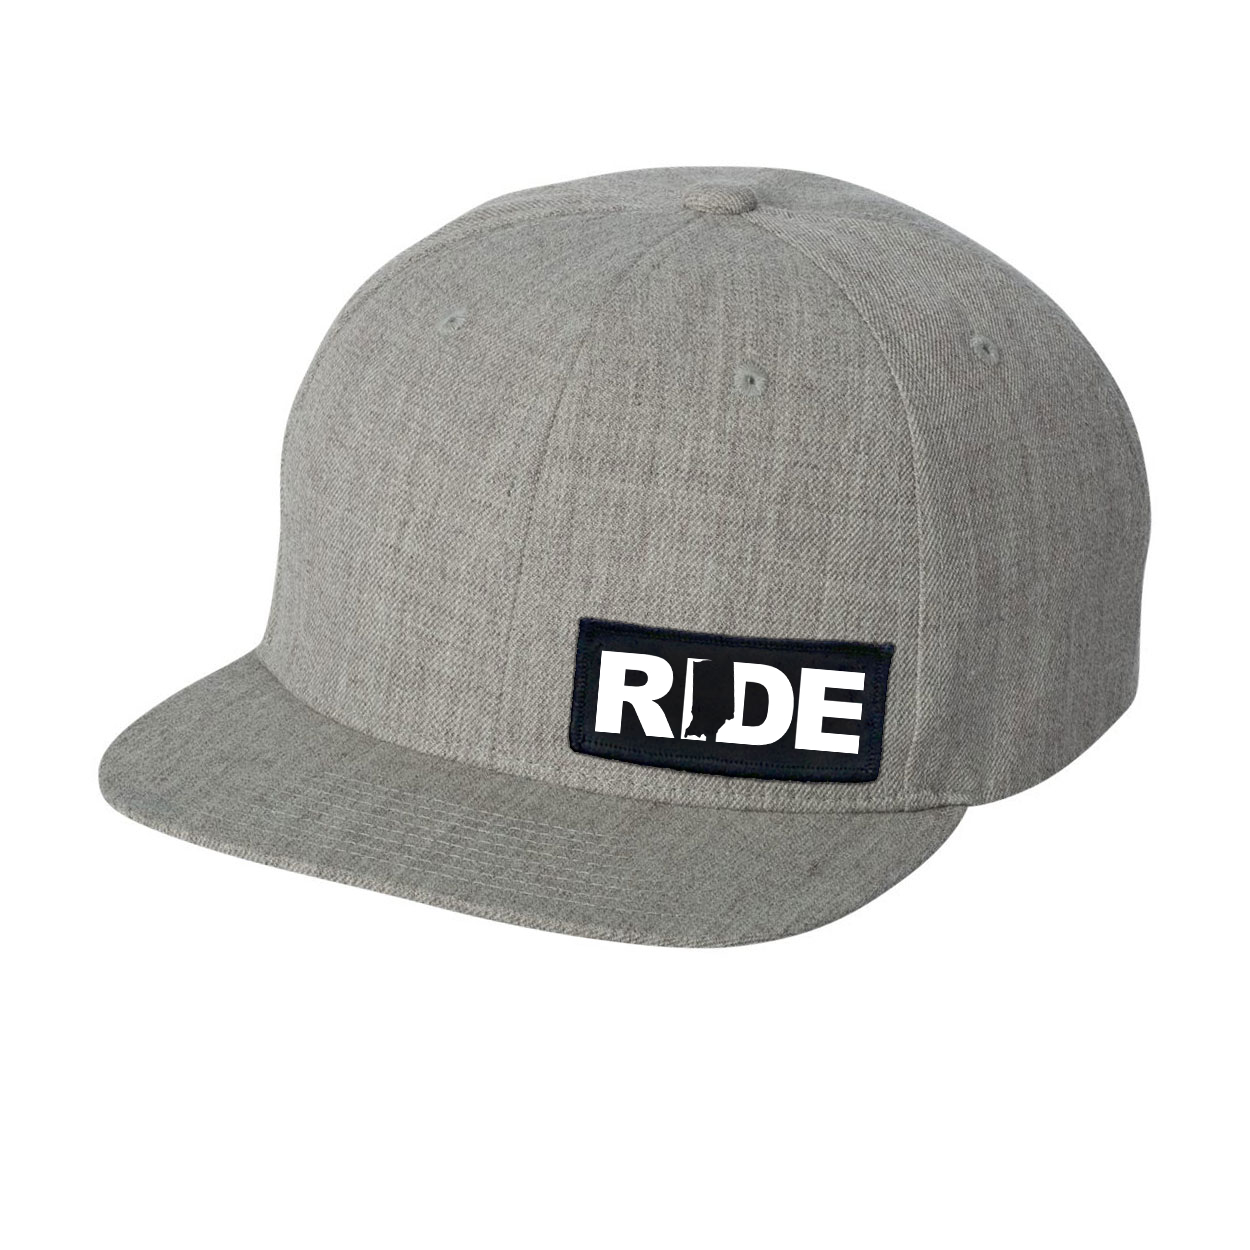 Ride Indiana Night Out Woven Patch Flat Brim Snapback Hat Heather Gray (White Logo)